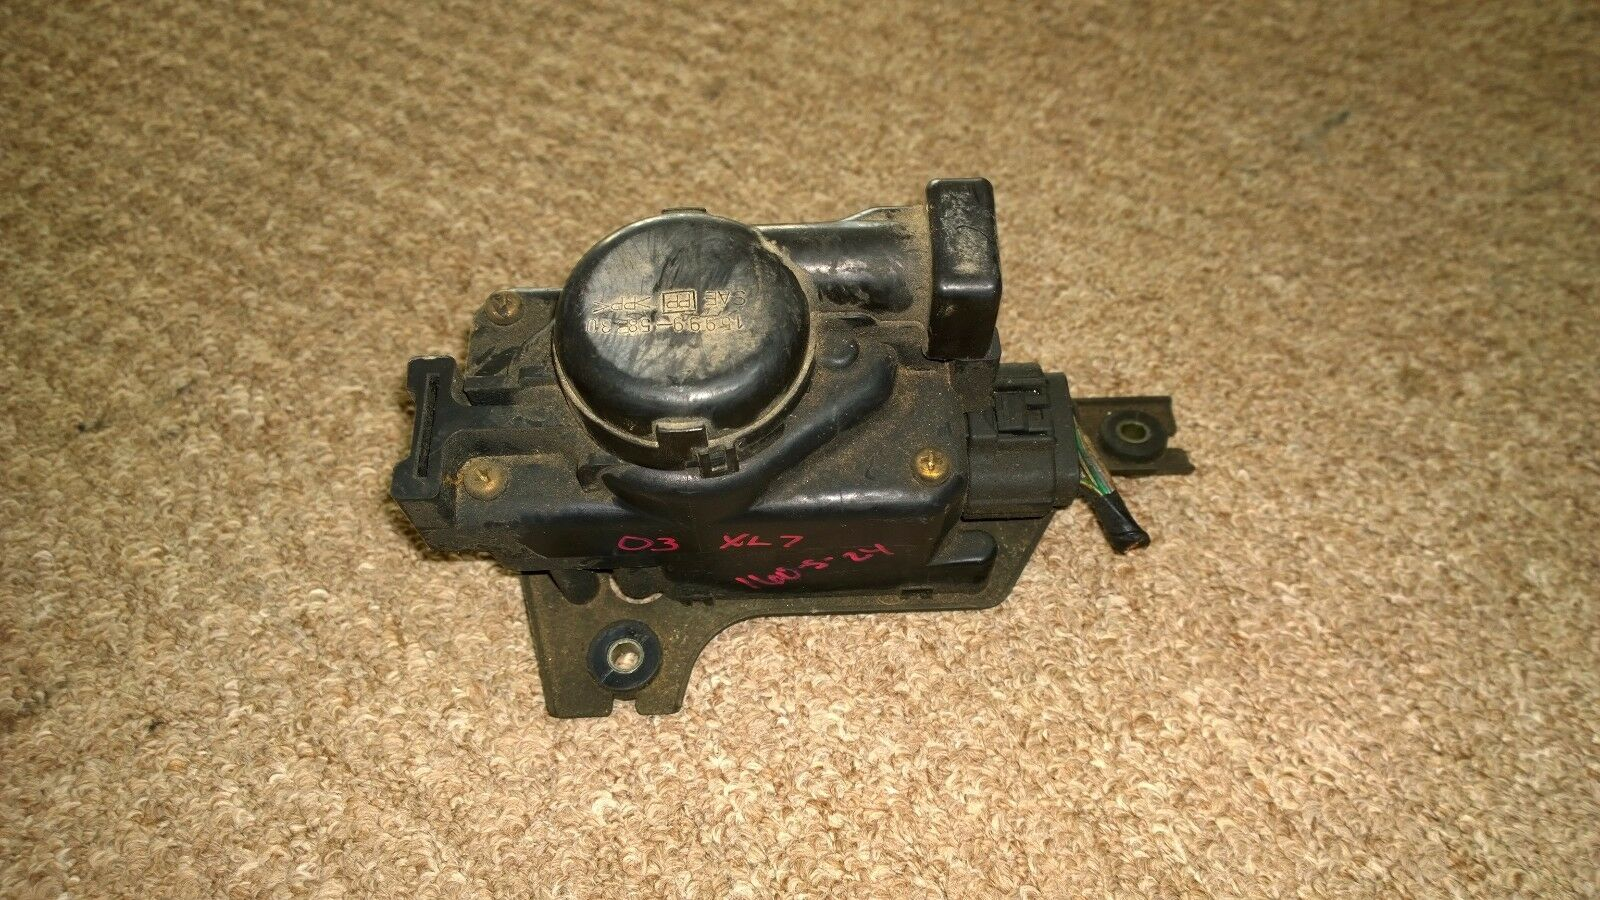 03 Suzuki Grand Vitara Xl7 27 Cruise Control Actuator Motor Oem 160 Blower Escudo S 24 1 Of 2only Available See More